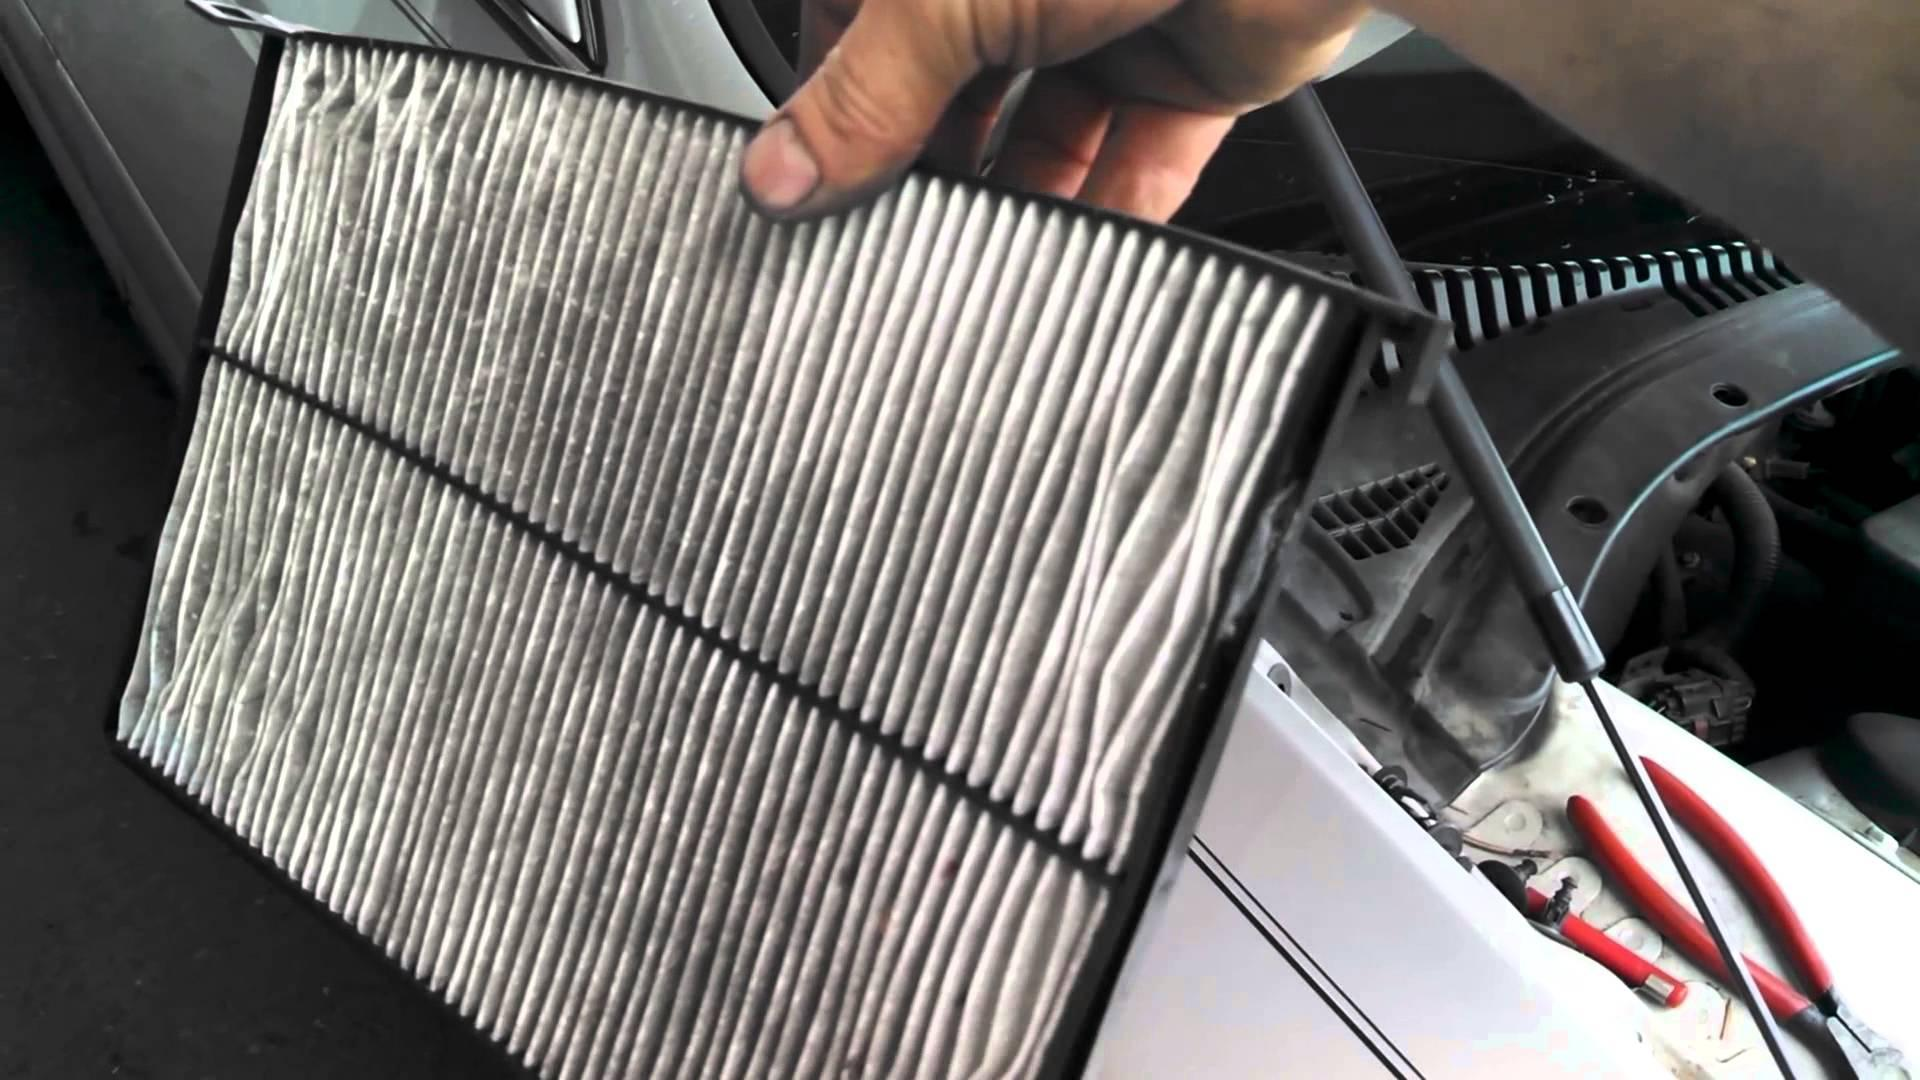 Air Filter. There are many routine car maintenance tasks that are easy to  overlook, and it's fair to say that some are more important than others.